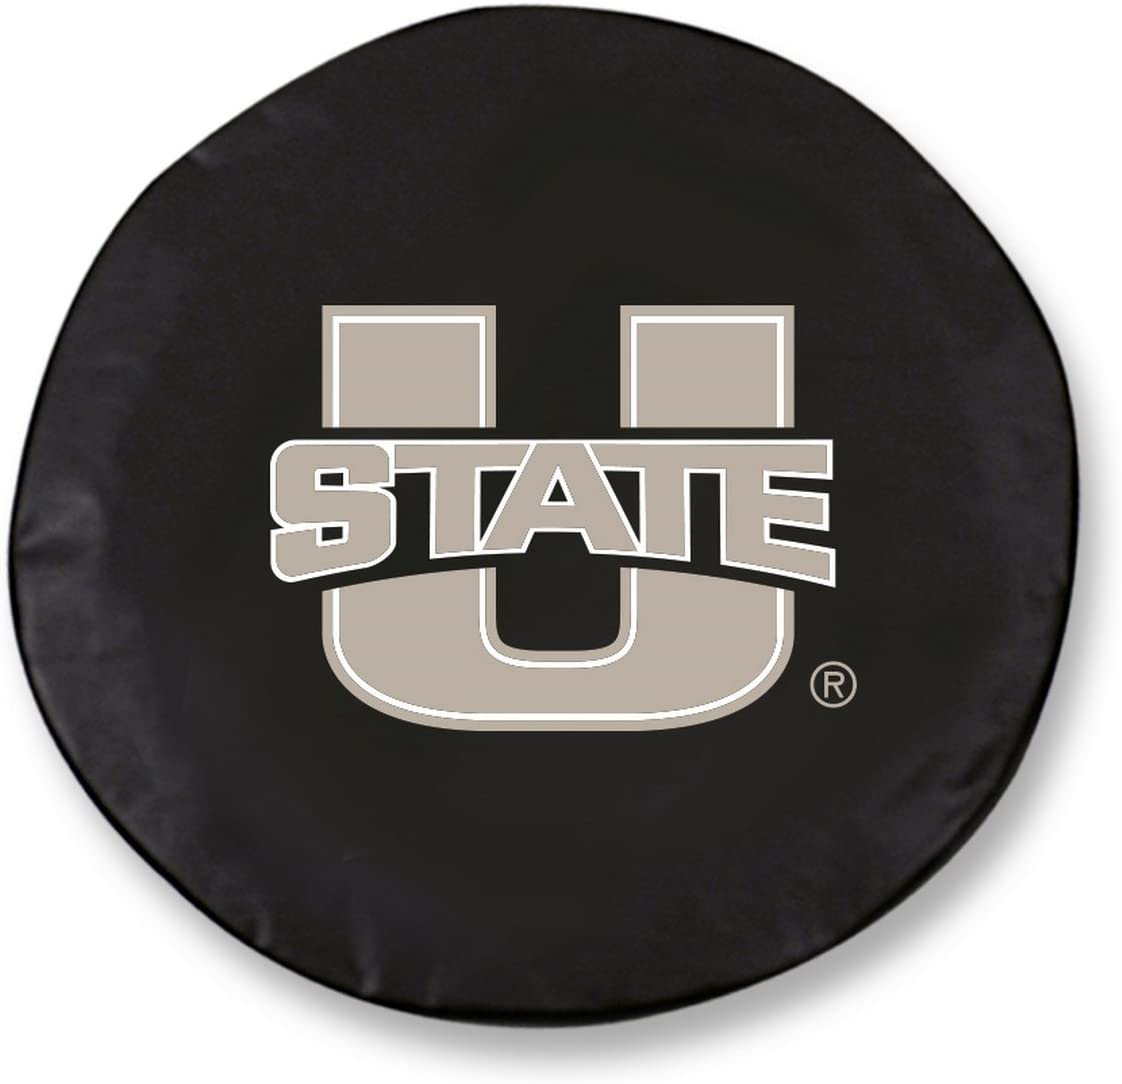 Holland Bar Stool Co. Finally resale start Utah State HBS Aggies Fitted 2021 new S Black Vinyl